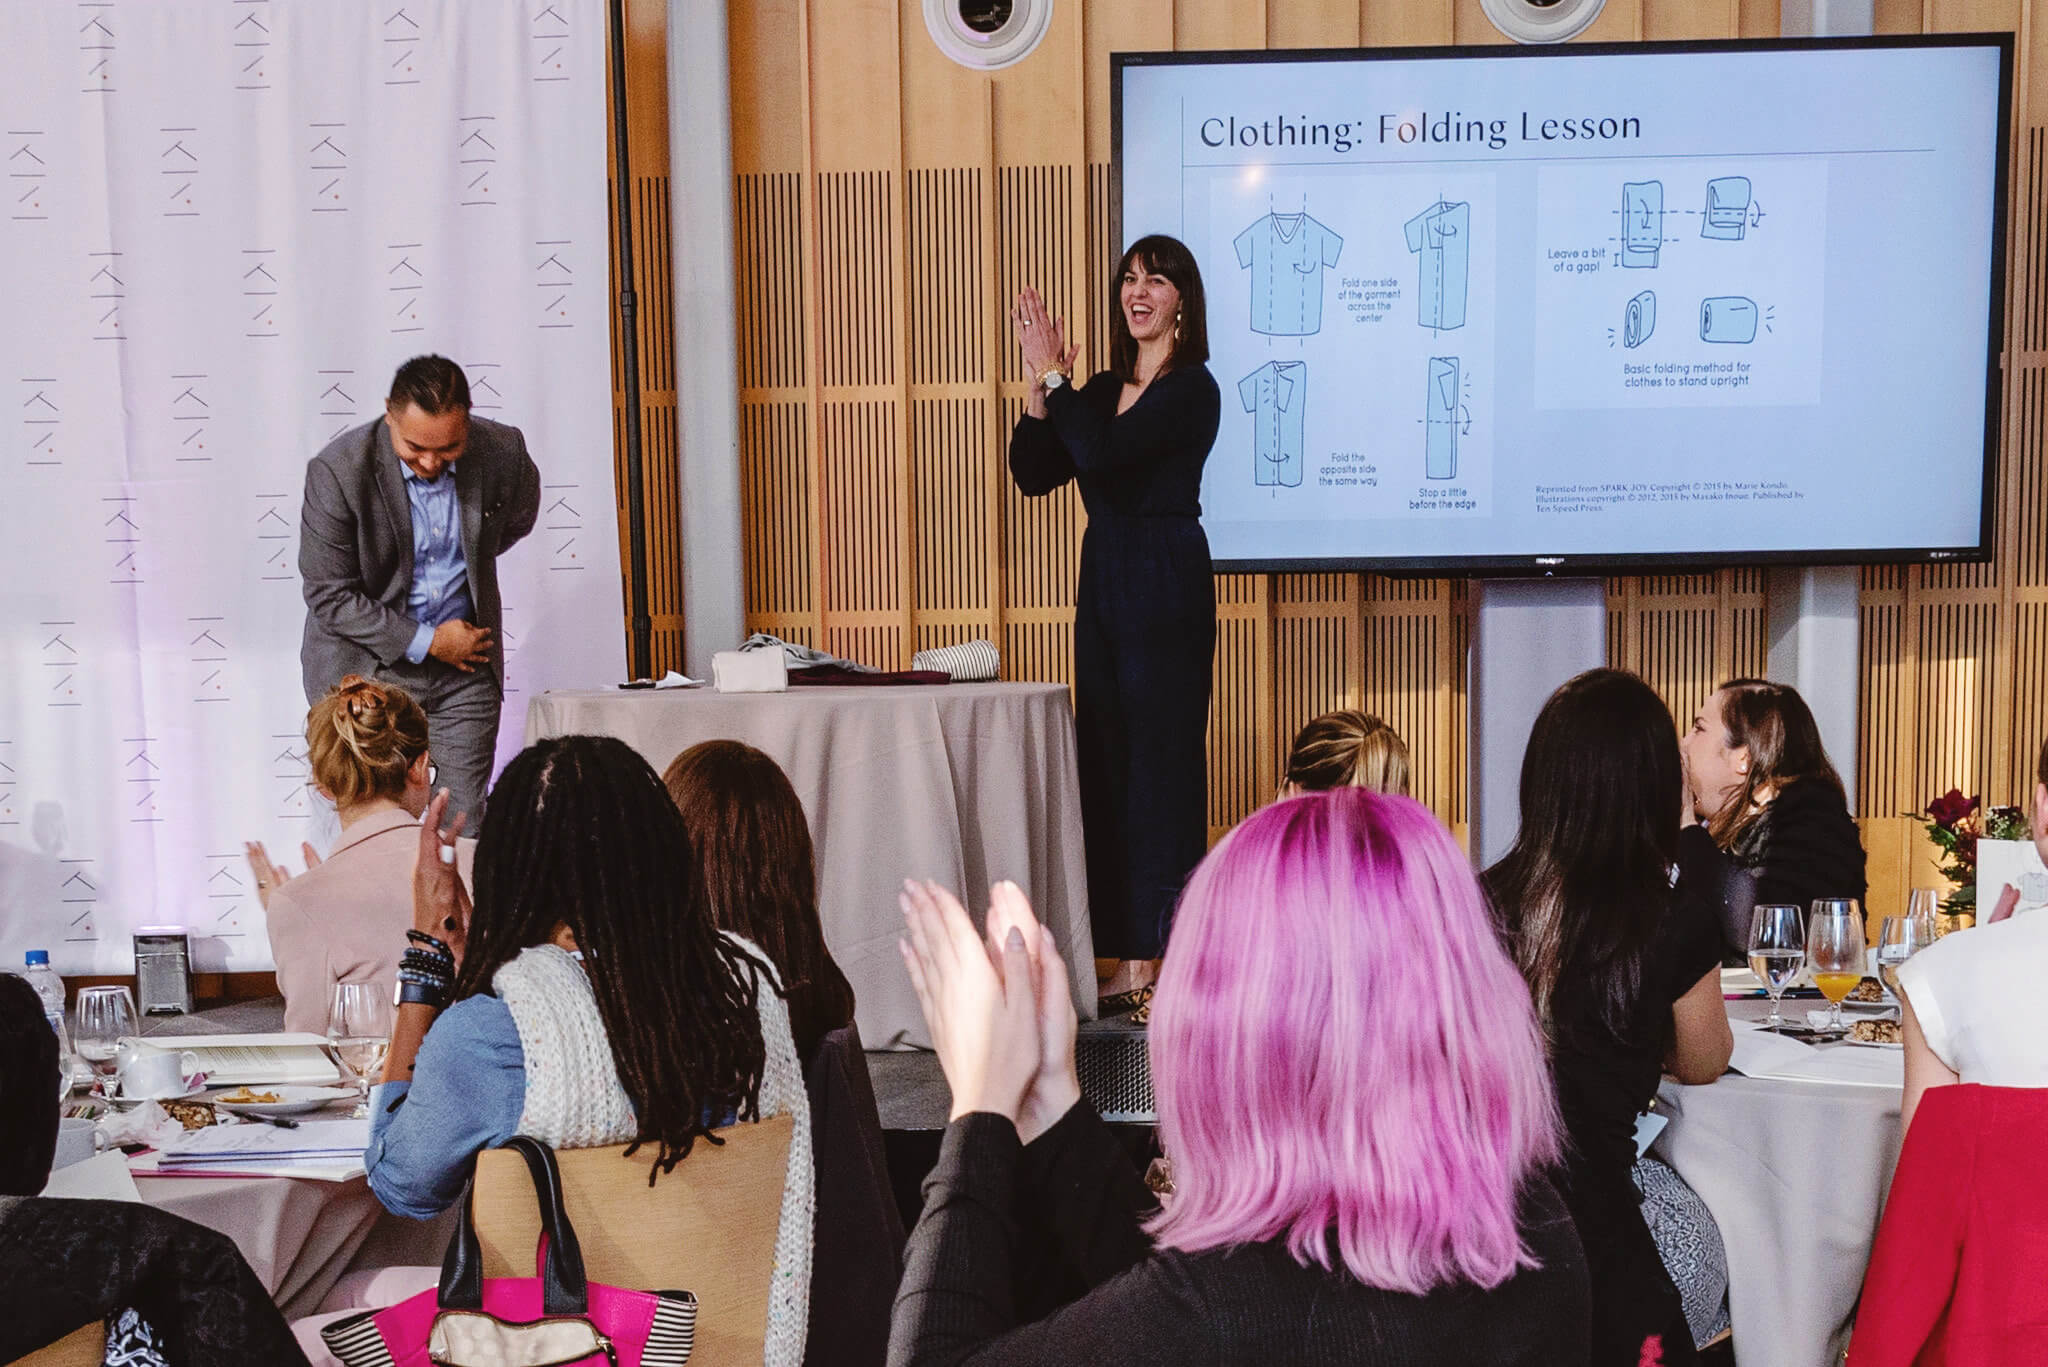 KonMari Clothing Folding Lesson During The KonMari Consultant Certification Course in New York, November 2019